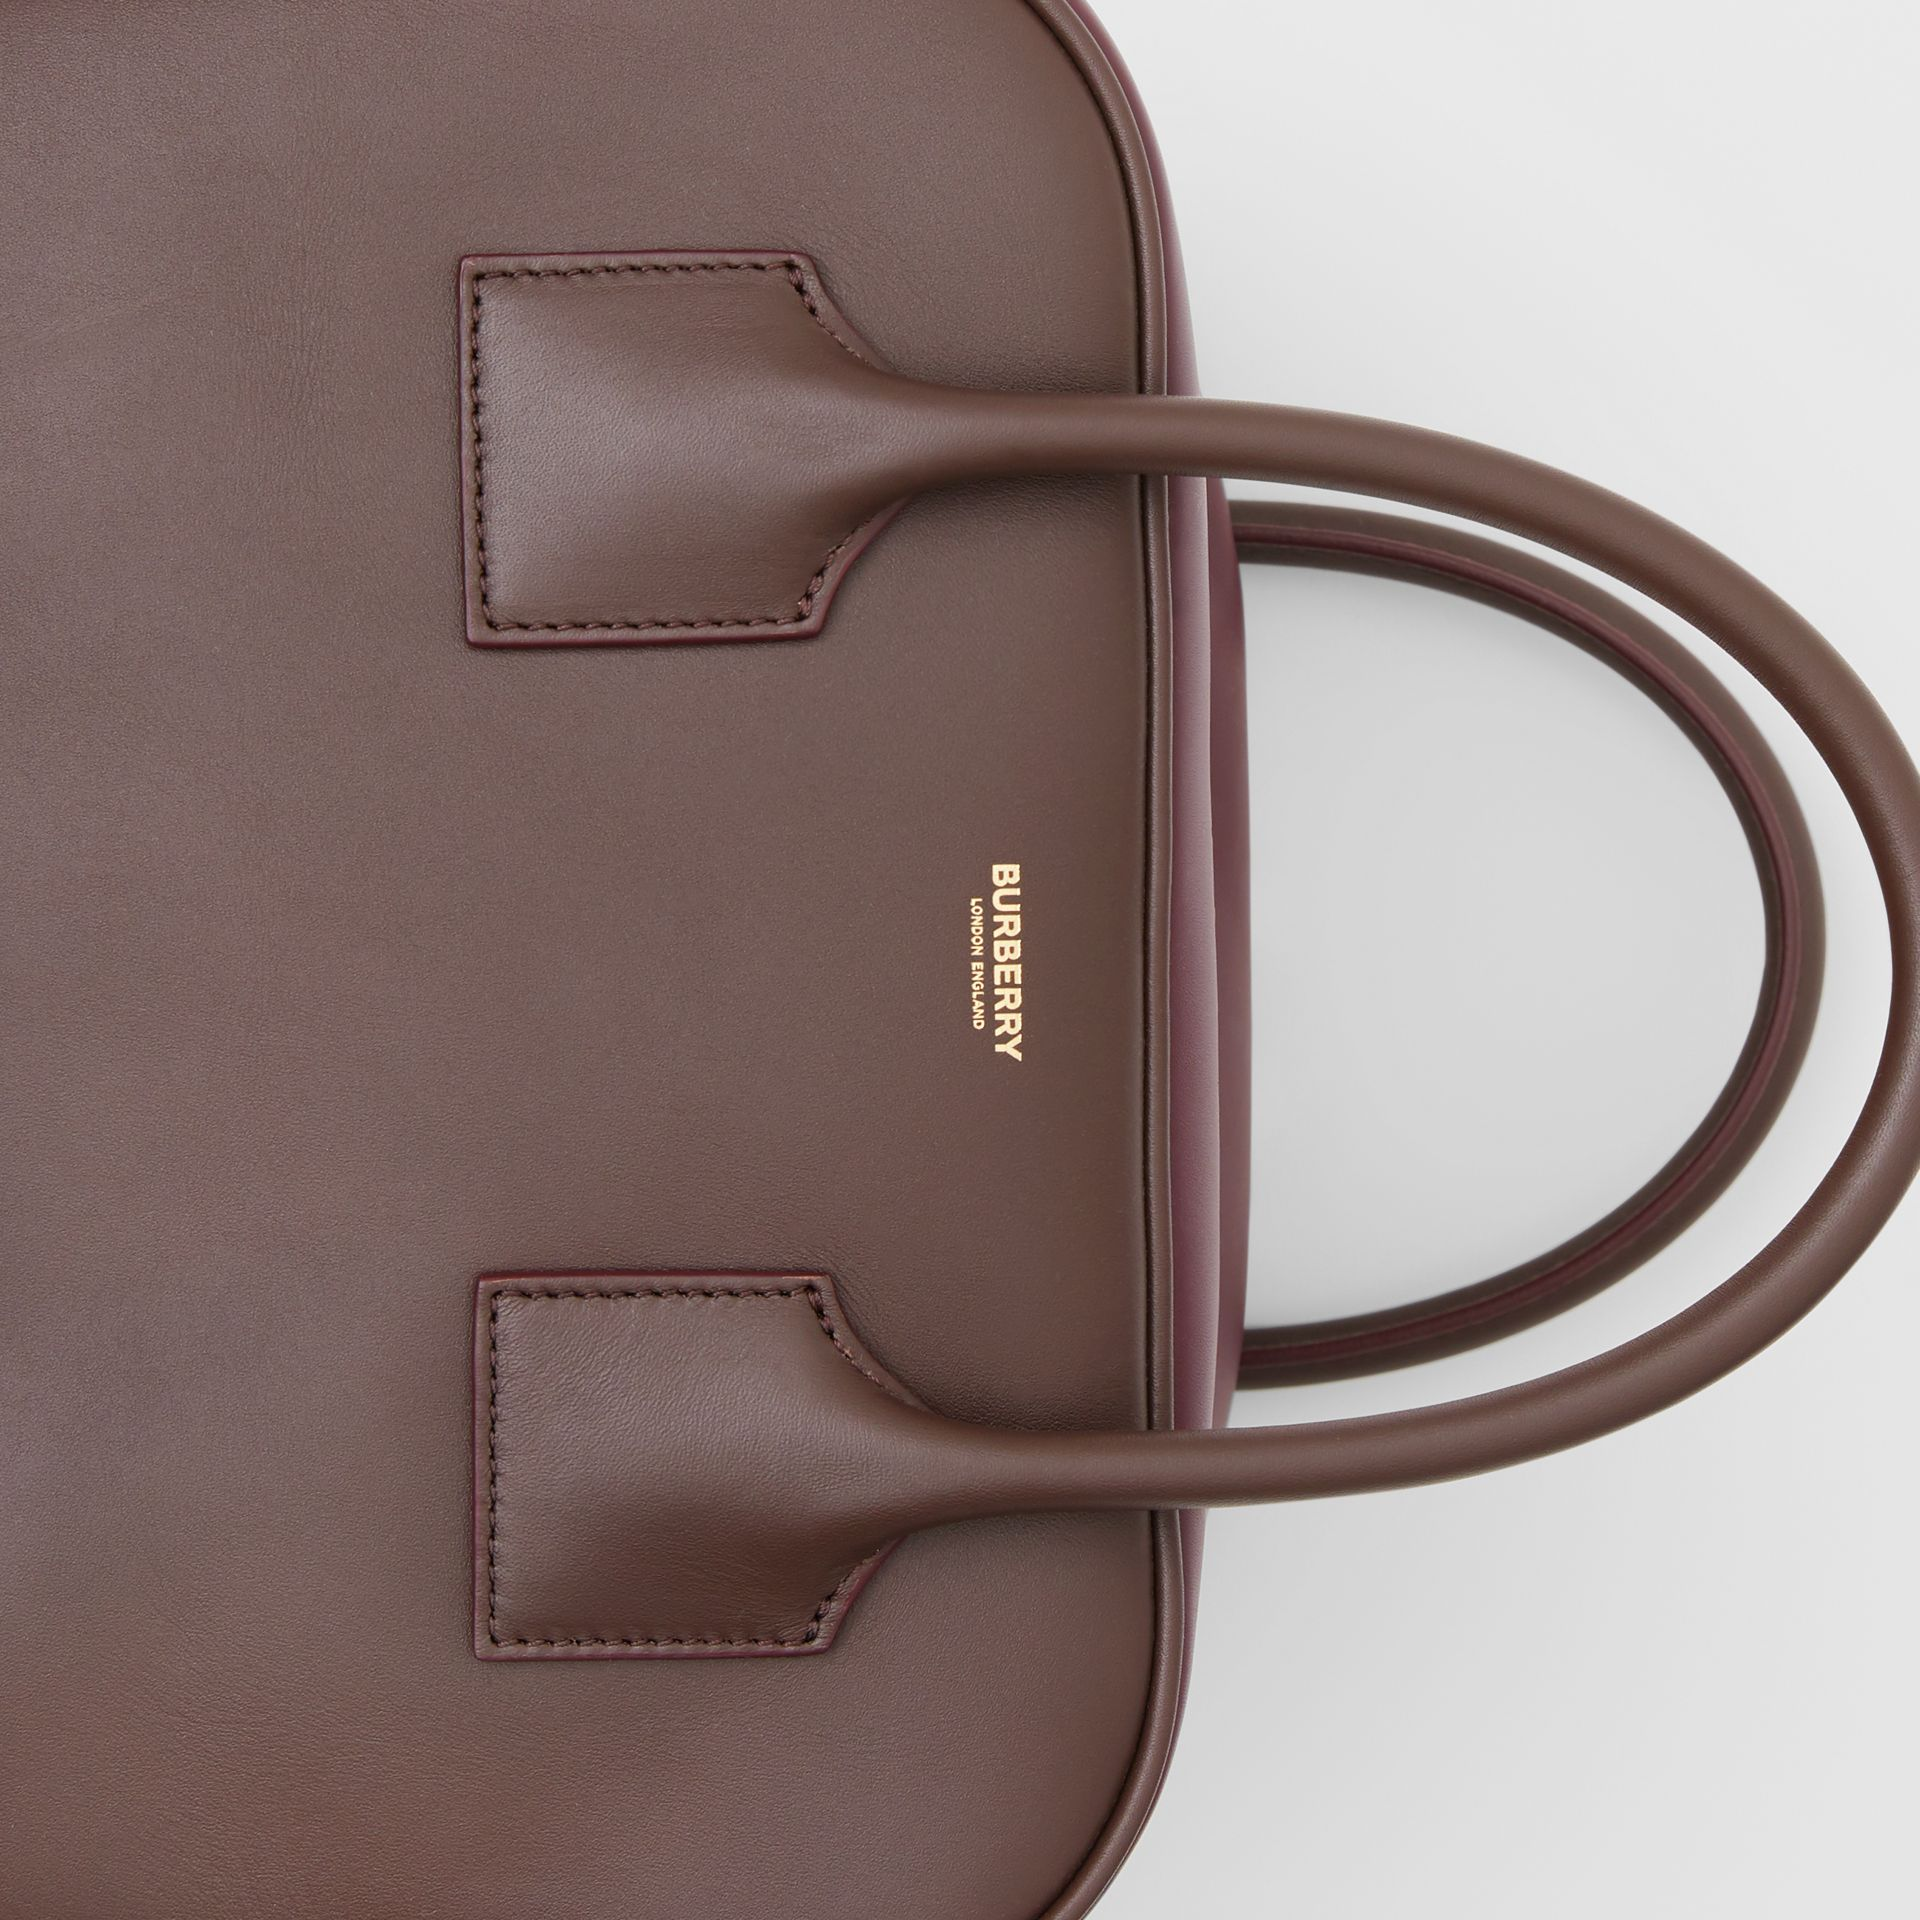 Medium Leather and Suede Cube Bag in Mahogany - Women | Burberry United Kingdom - gallery image 1